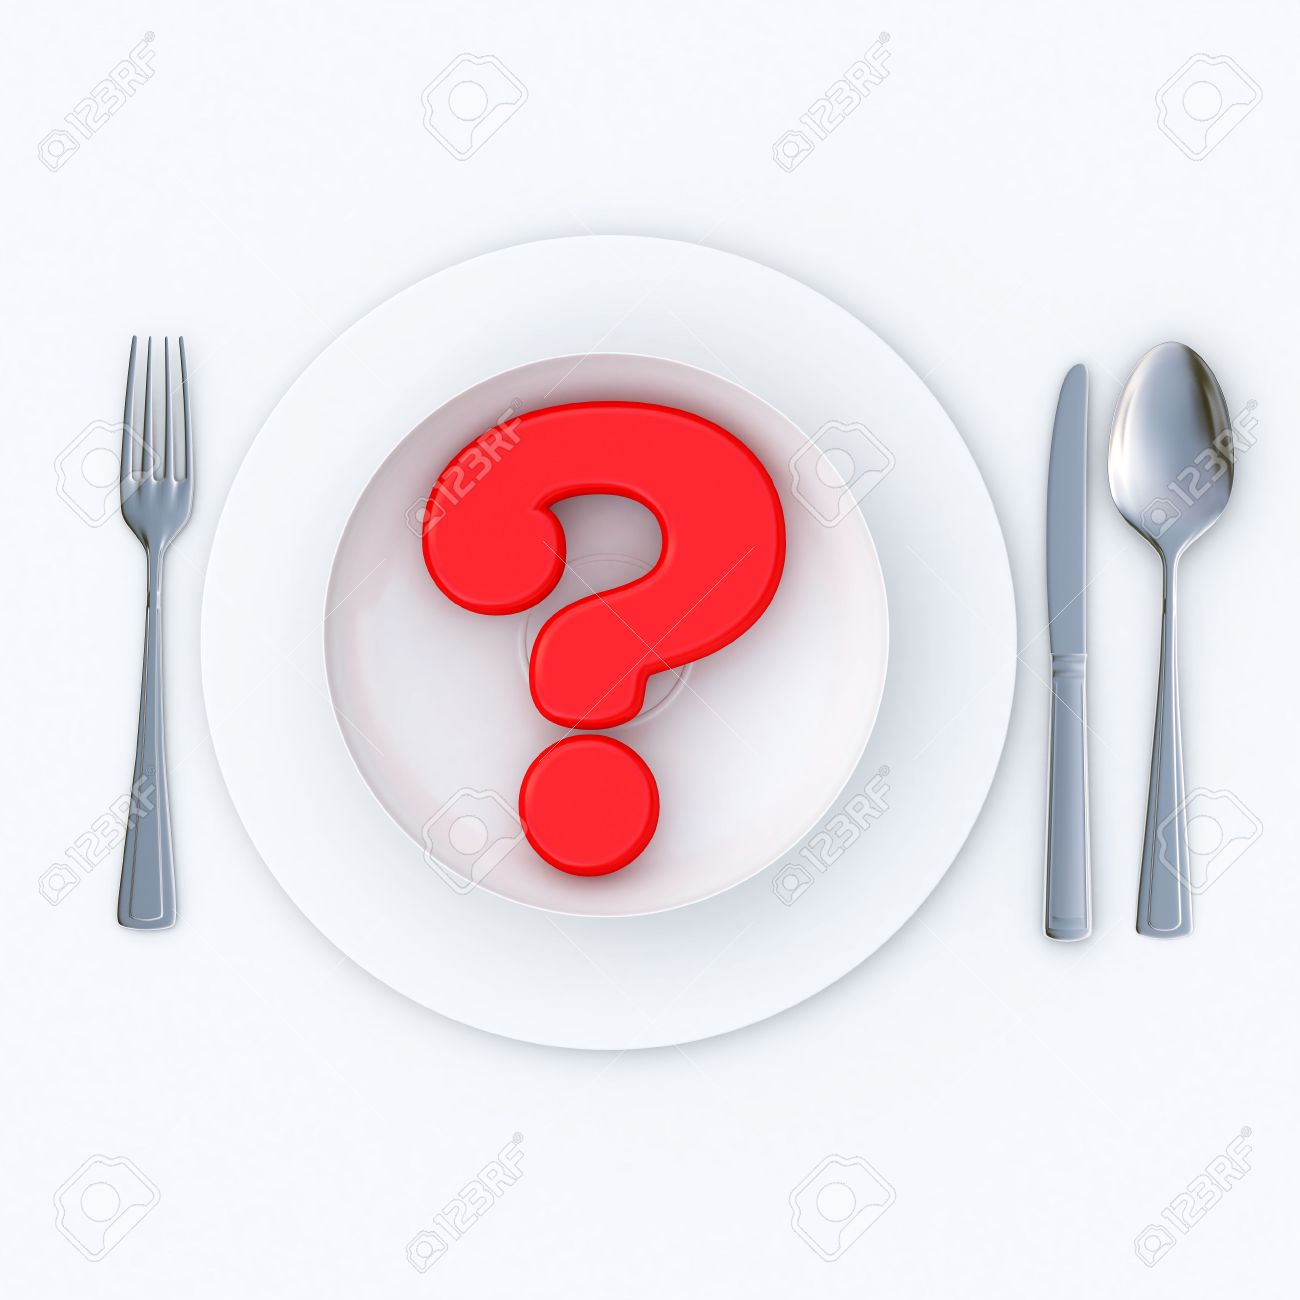 3D-rendering of a red question mark served in a plate ready to eat Stock Photo - 3010645